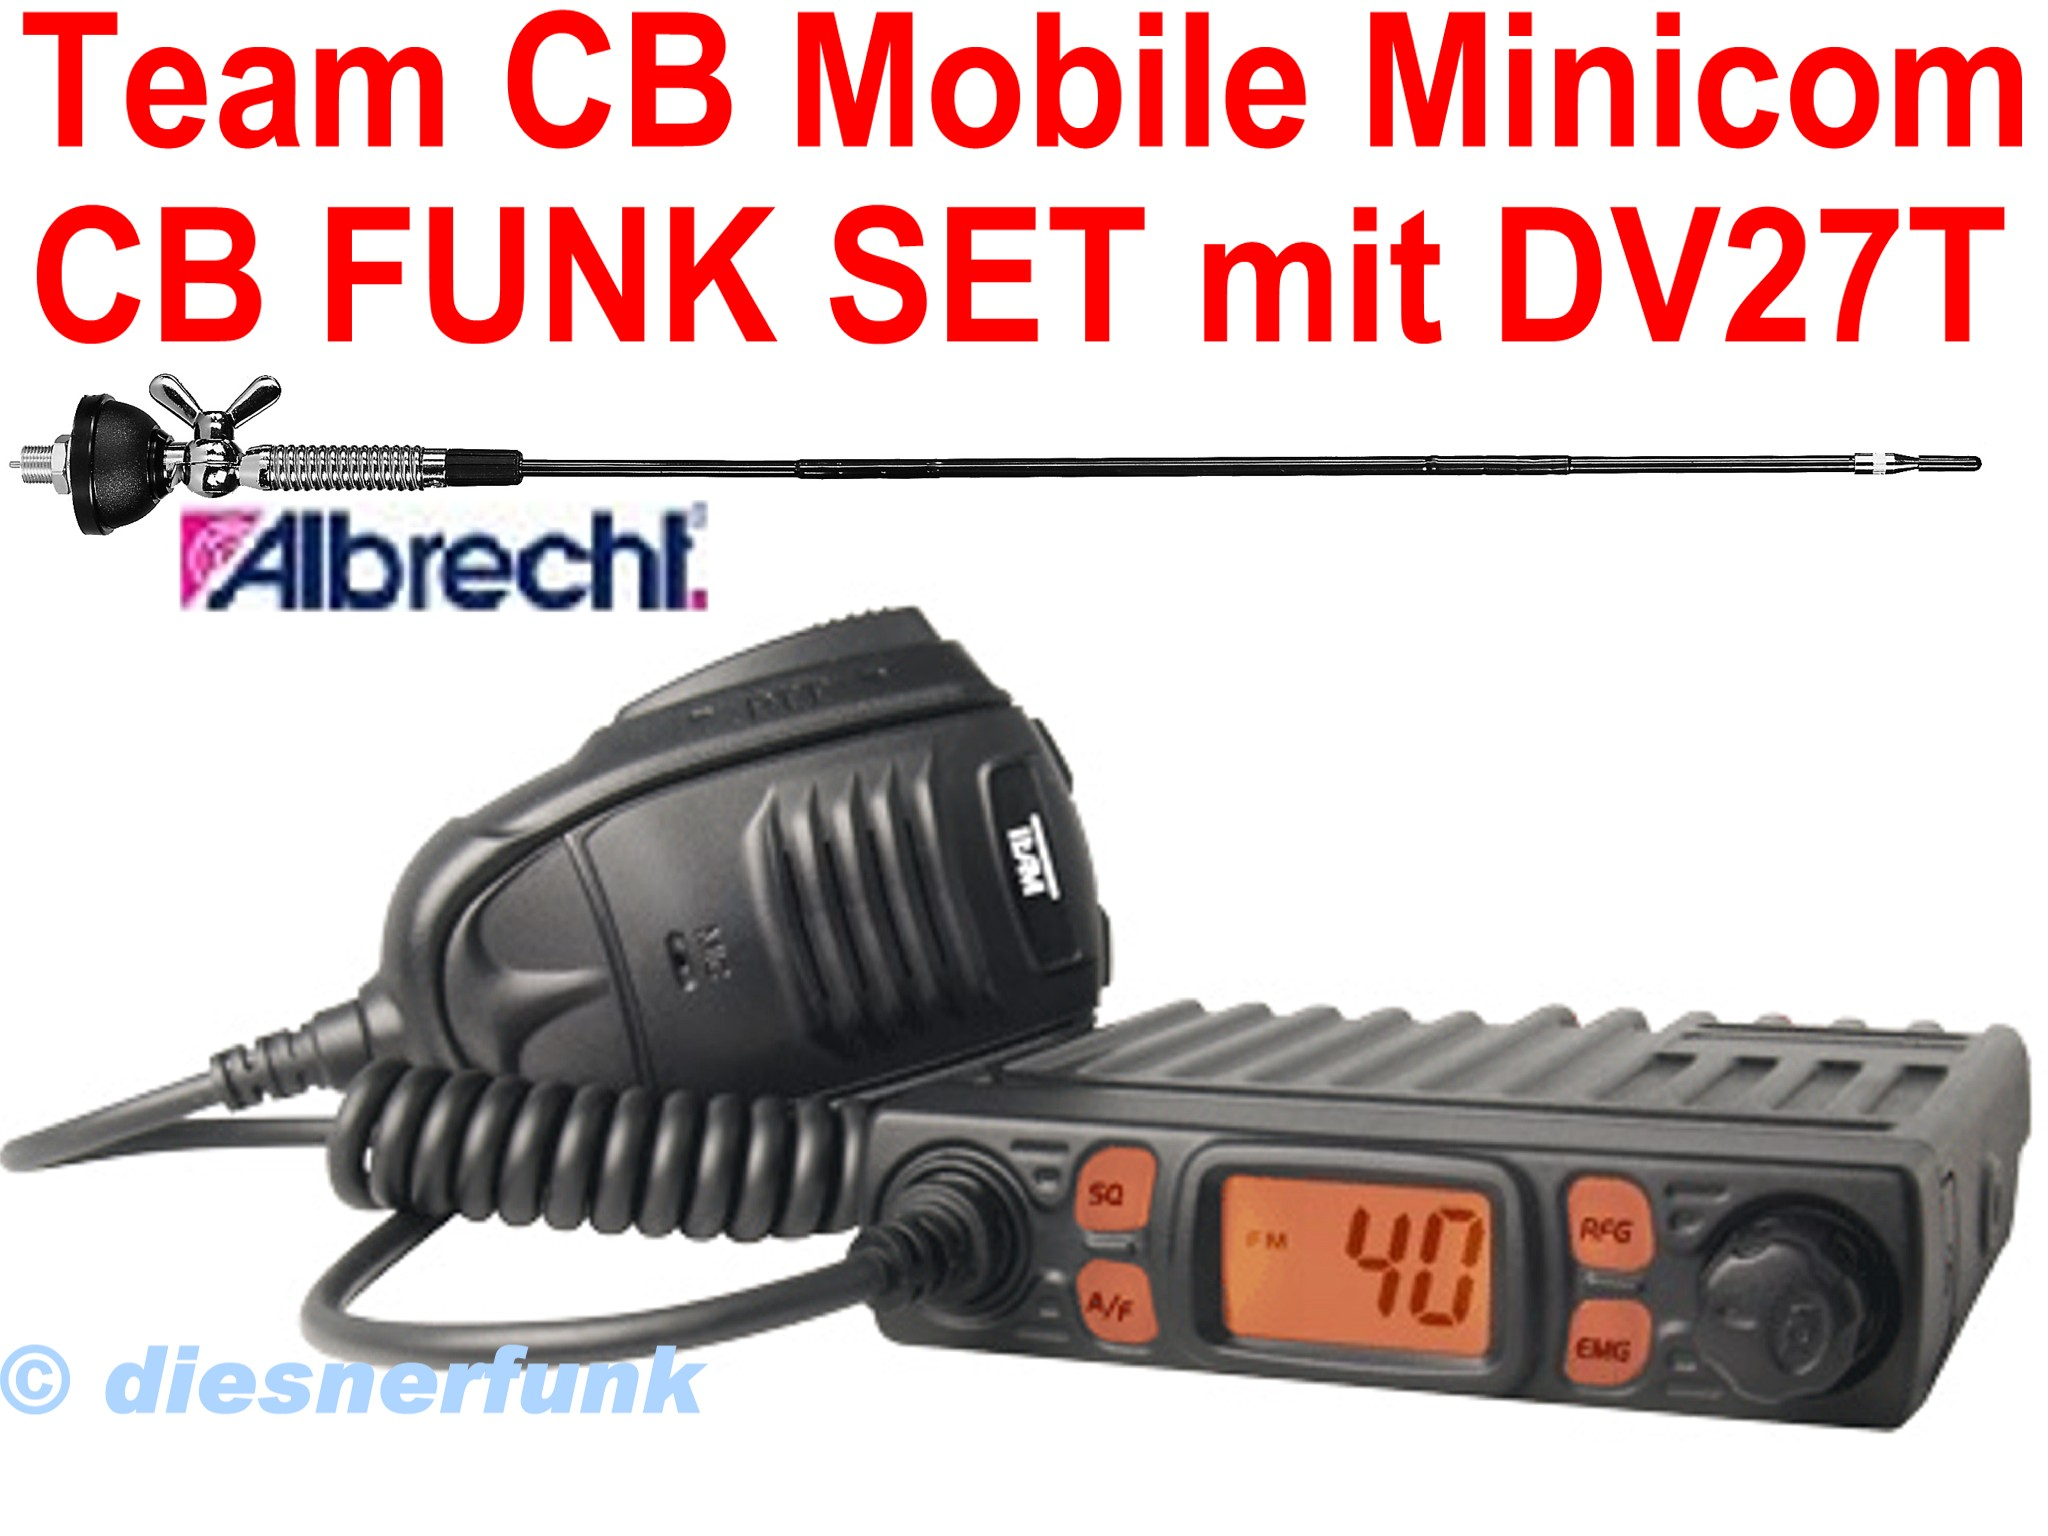 team cb mobile minicom micro cb funk set 4w am fm dv27 t antenne giftzwerg ebay. Black Bedroom Furniture Sets. Home Design Ideas